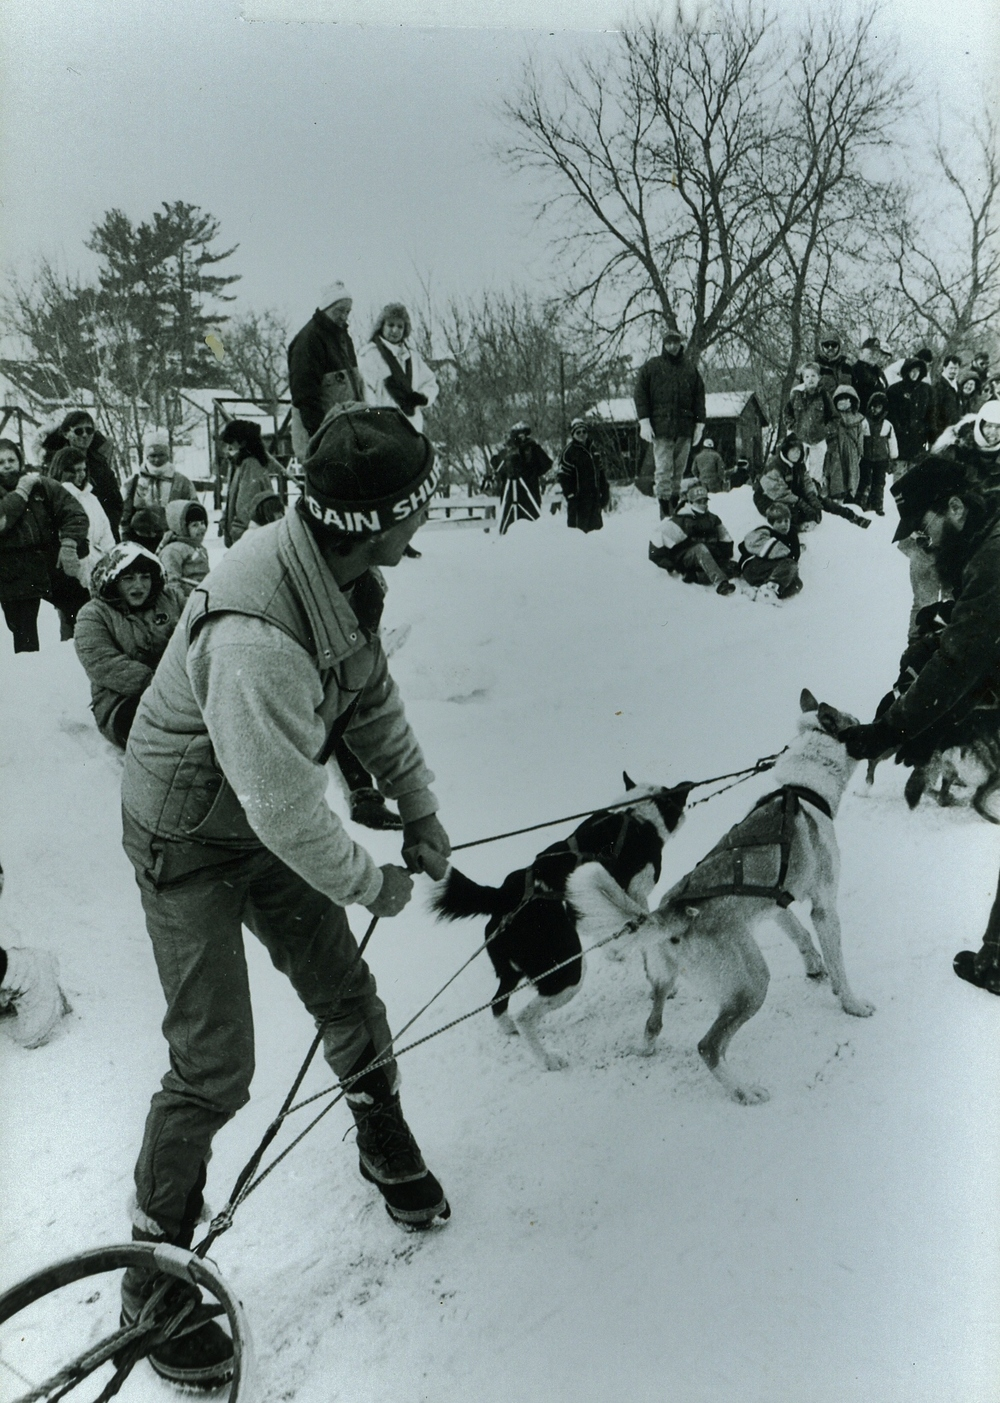 Snofest 1994 Team of Paul Therriault, Mechanic Falls, Maine